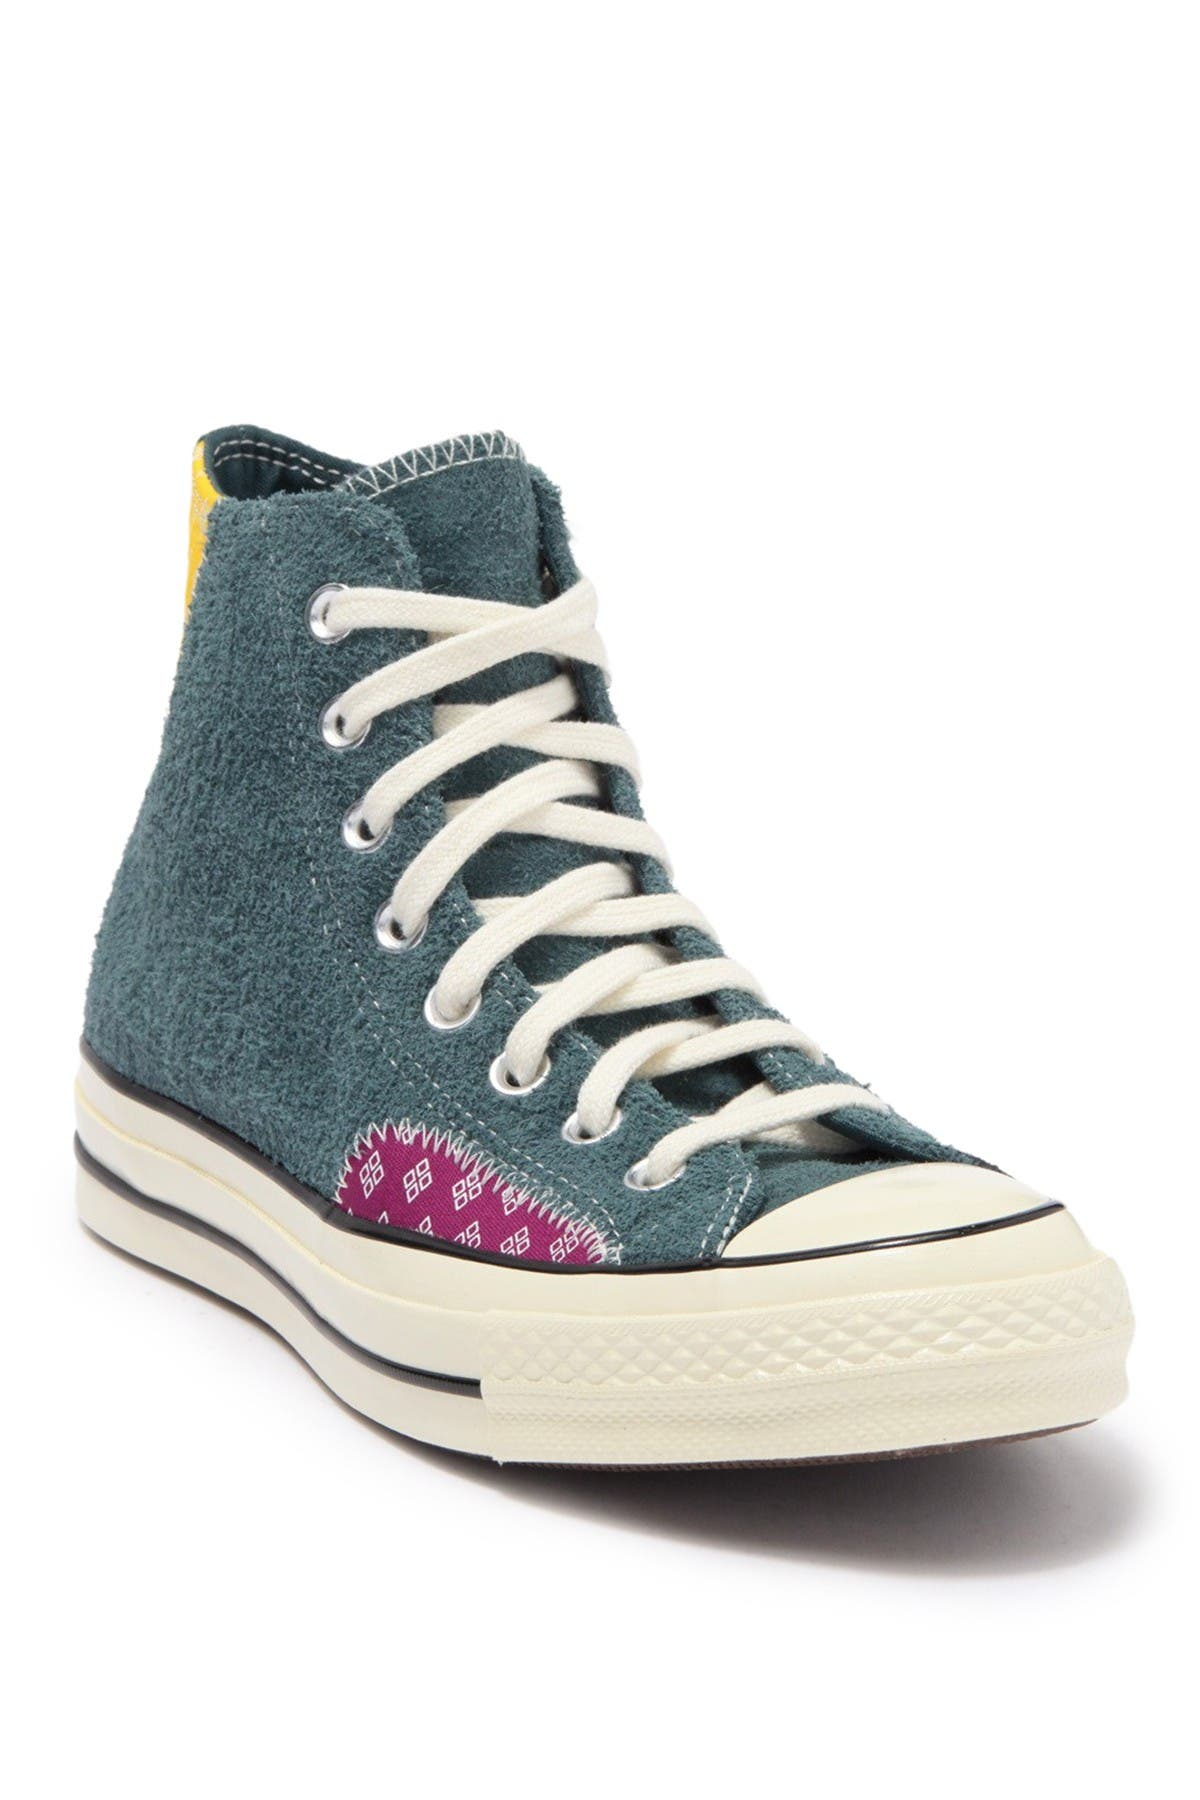 Image of Converse Chuck 70 Fuzzy Patchwork Hi-Top Sneaker